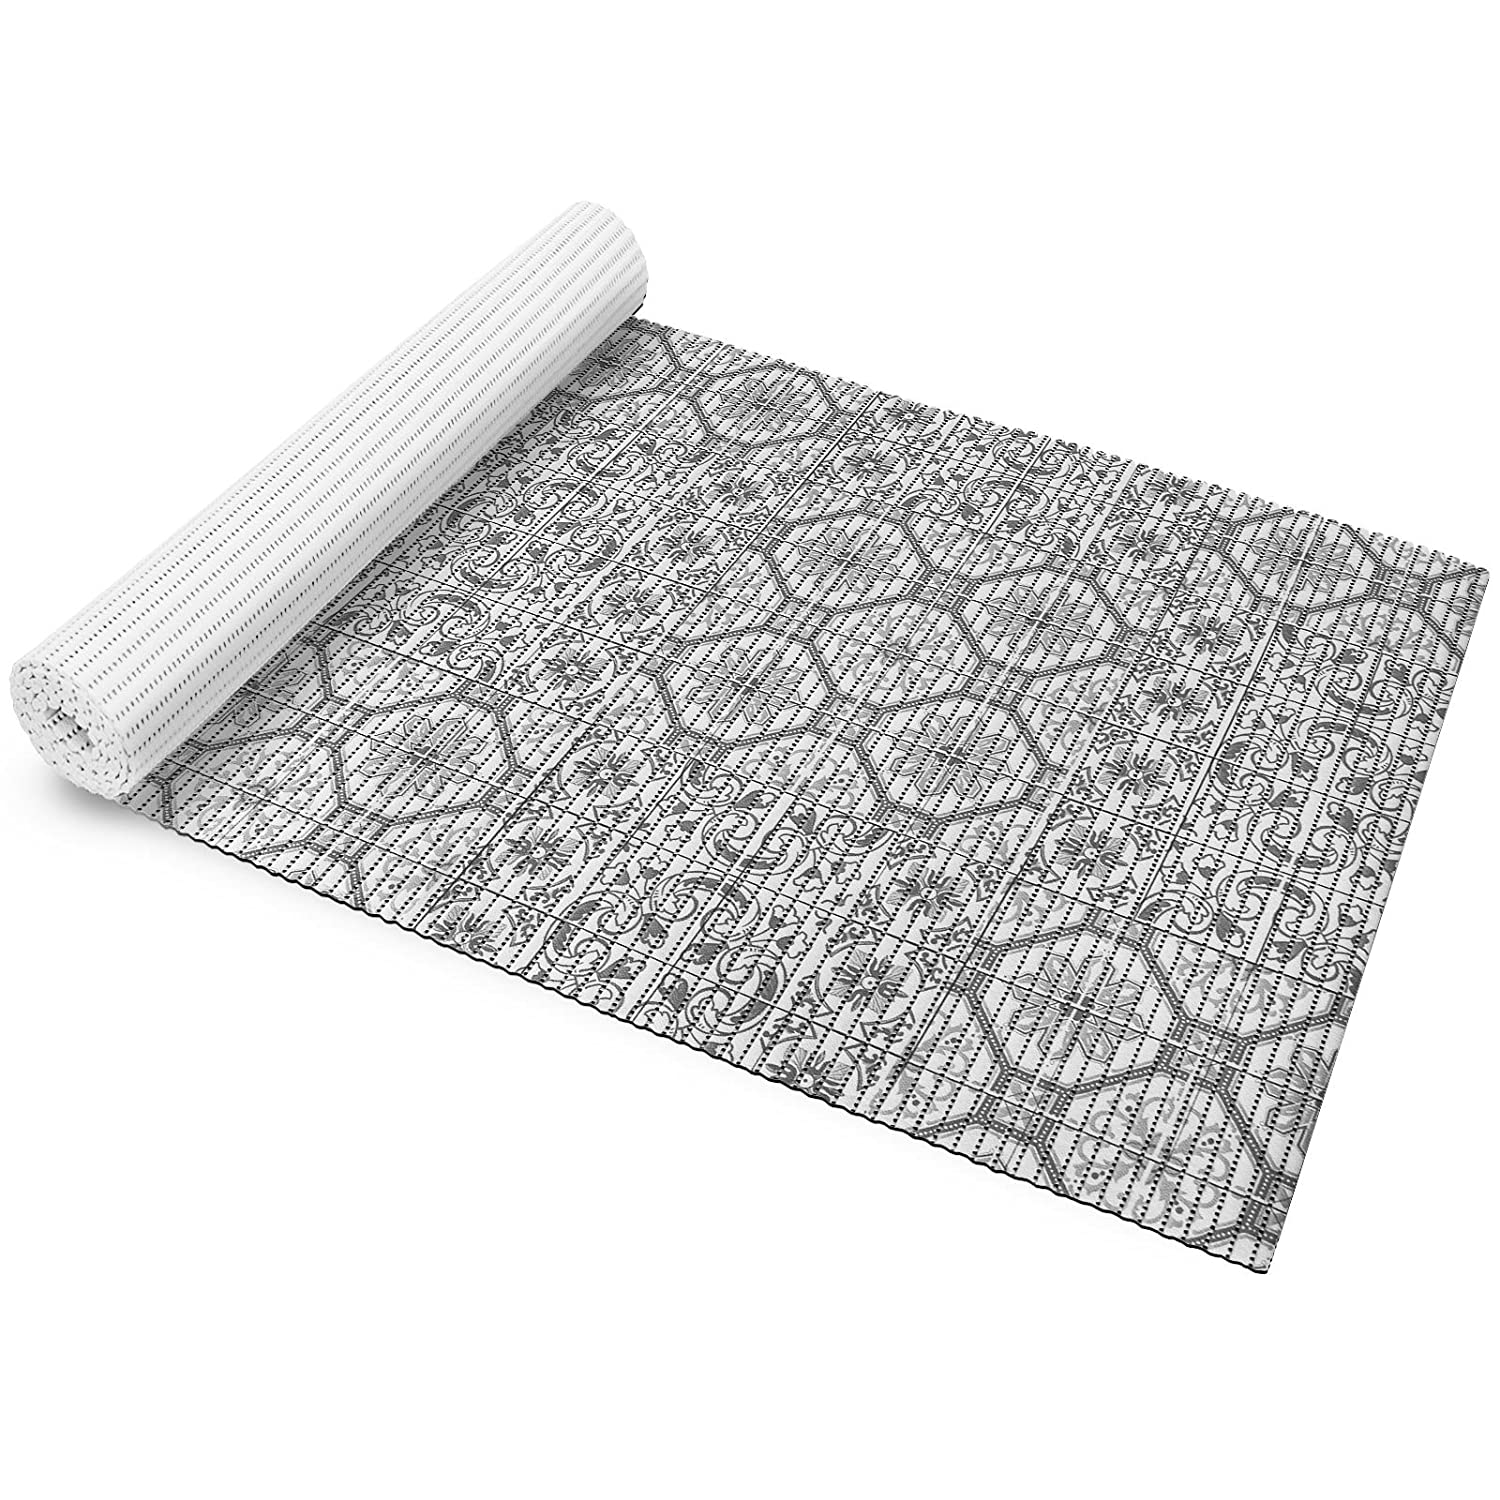 casa pura Foam Bath Mat | Non-Slip, Fast Drying Bathroom Rug | REACH Certified | Secure Grip, Washable | Grey Oriental Design, 65x50cm